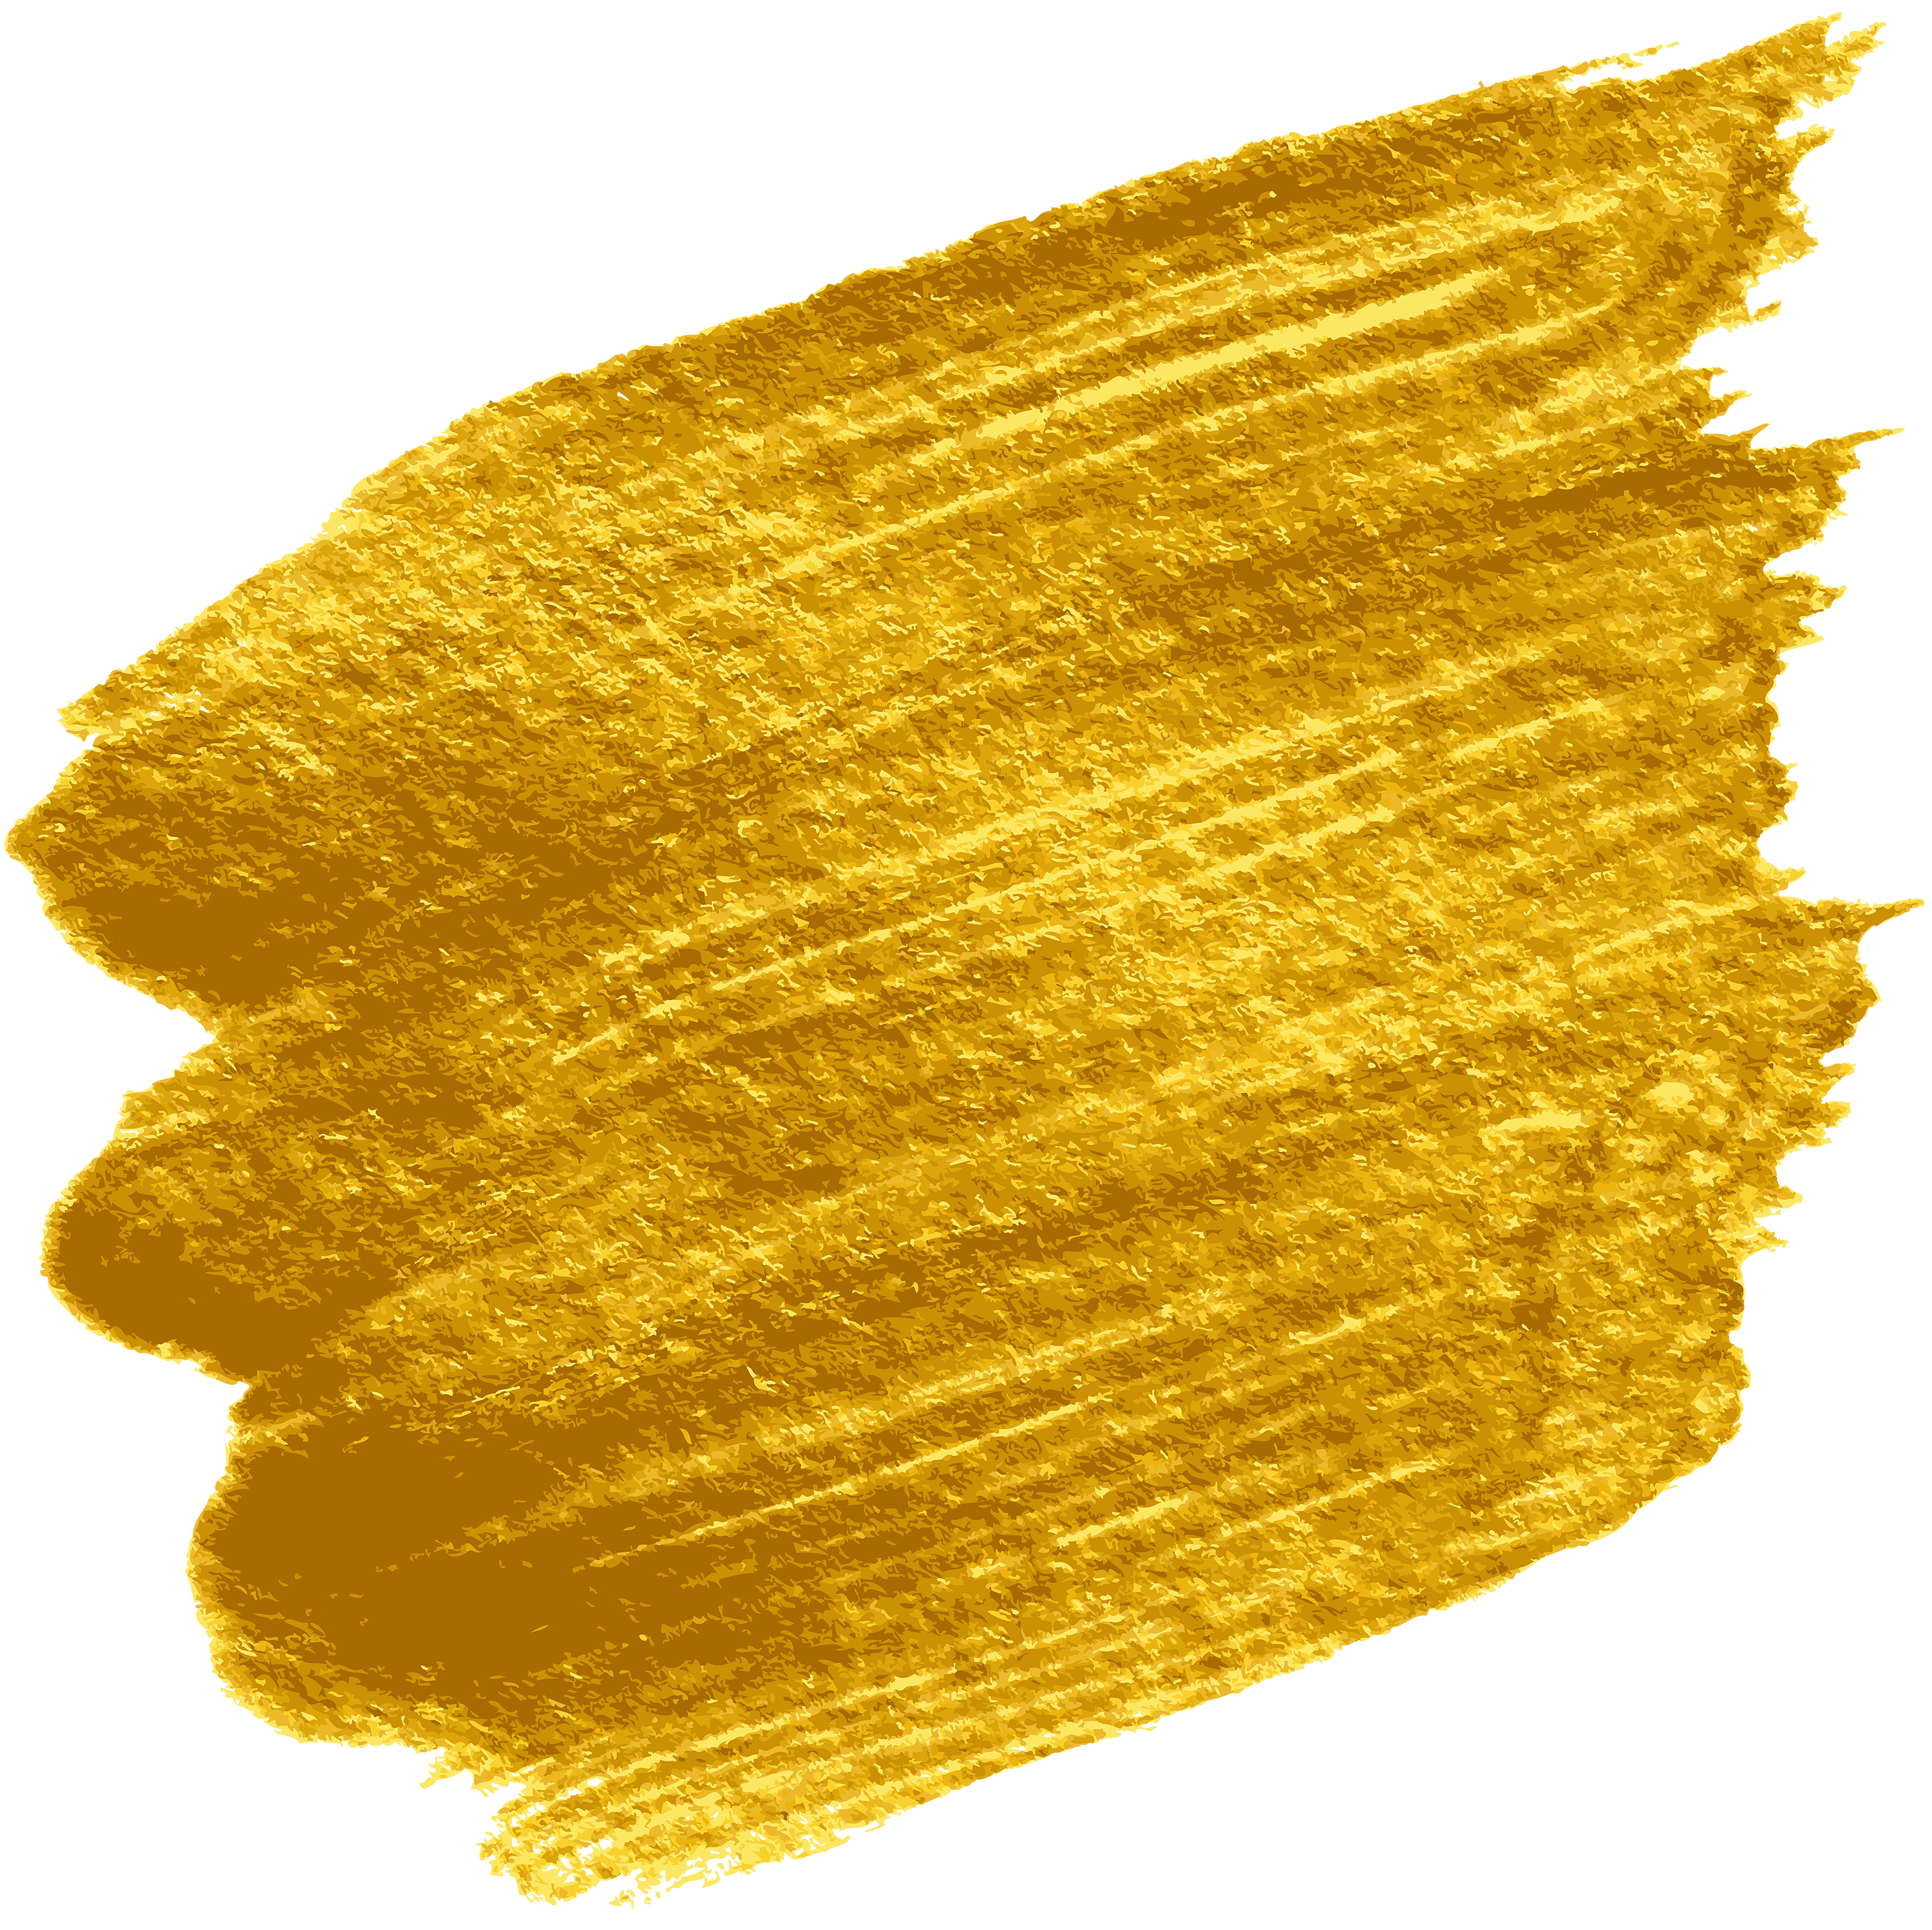 Gold paint png. Shining stain transparent clip